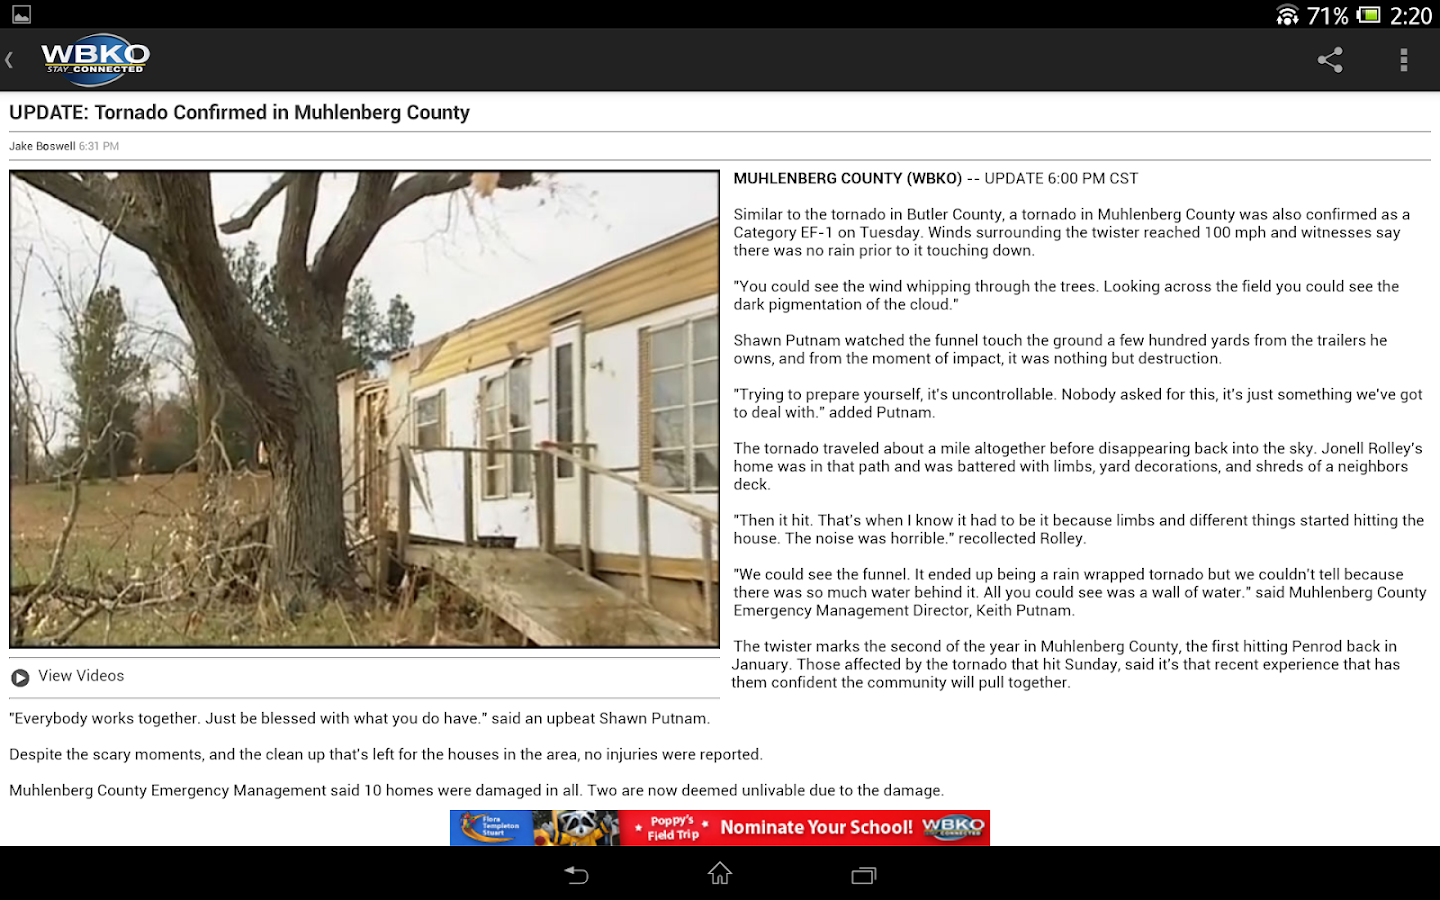 WBKO News - screenshot